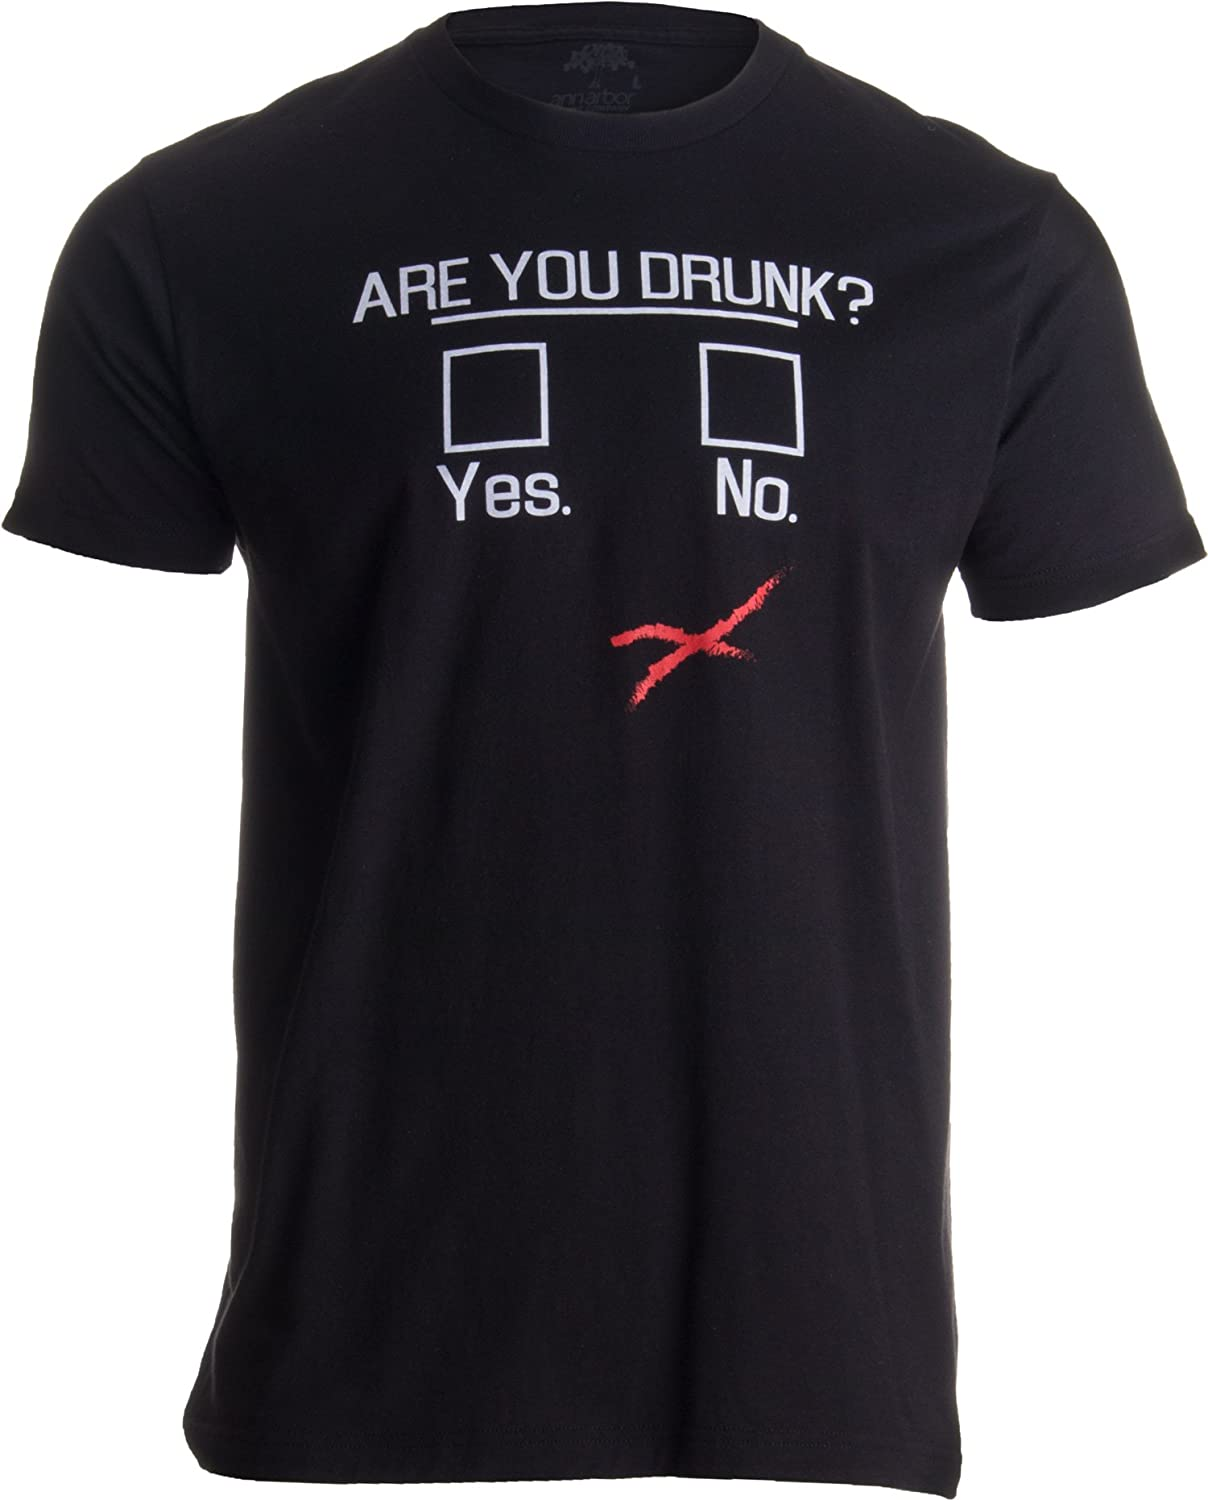 You Drunk? | Funny Beer Drinking, Bar Party Humor Gag Gift Unisex T-shirt Ann Arbor T-shirt Co. 0-beer_youdrunk-man